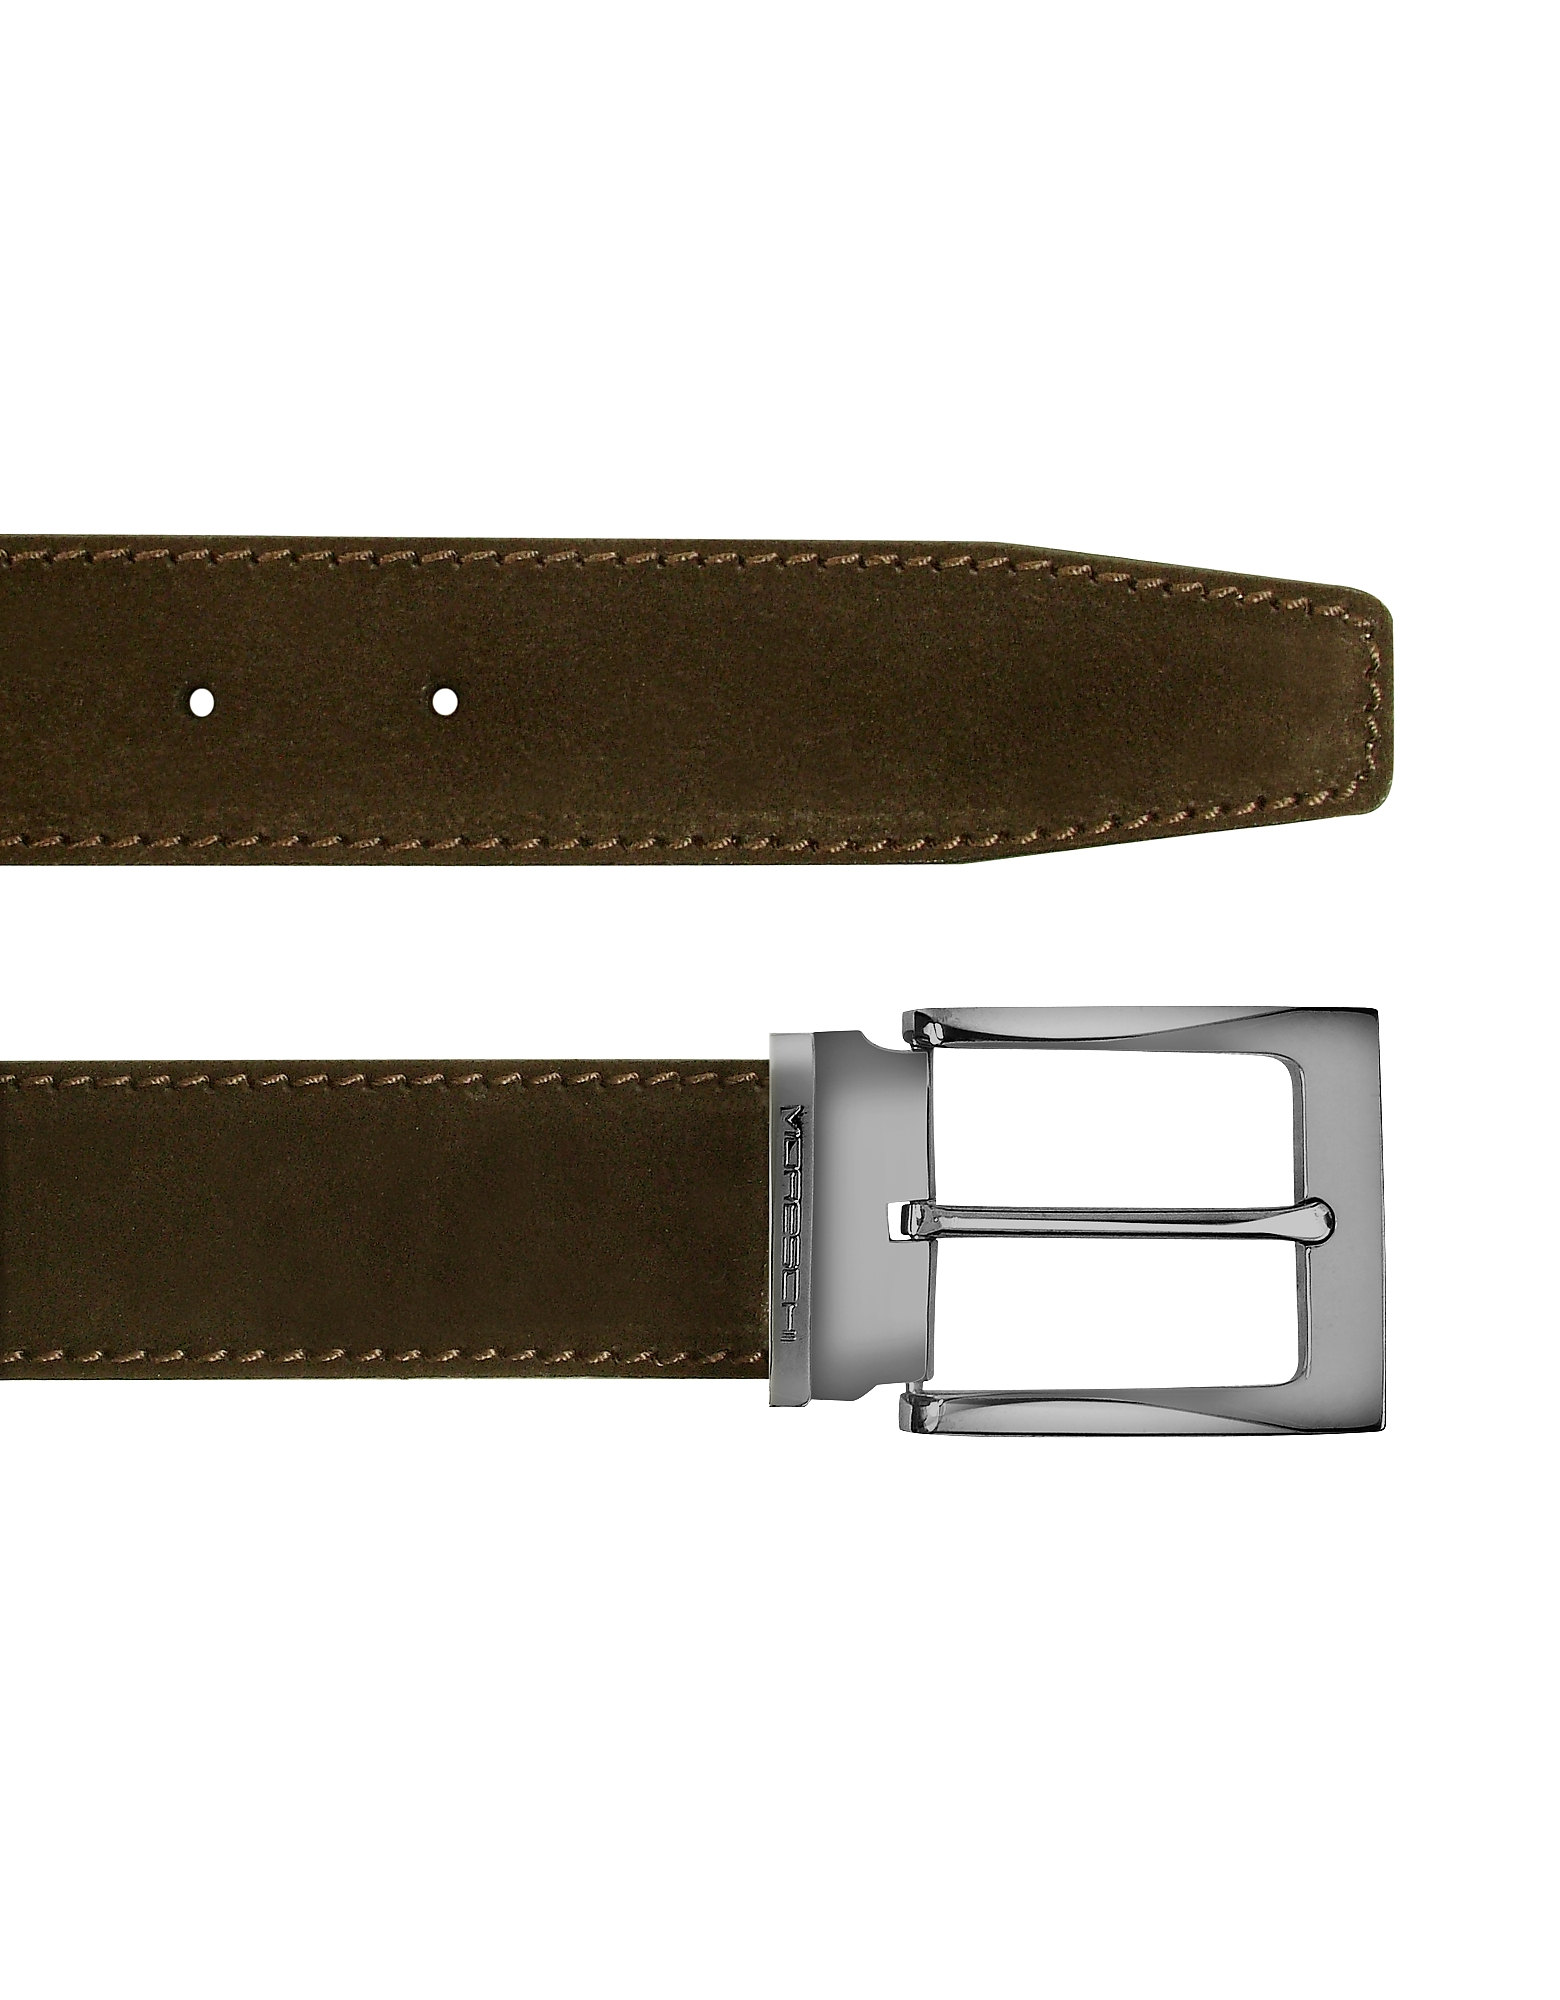 Moreschi Designer Men's Belts, Dallas - Dark Brown Suede Leather Belt